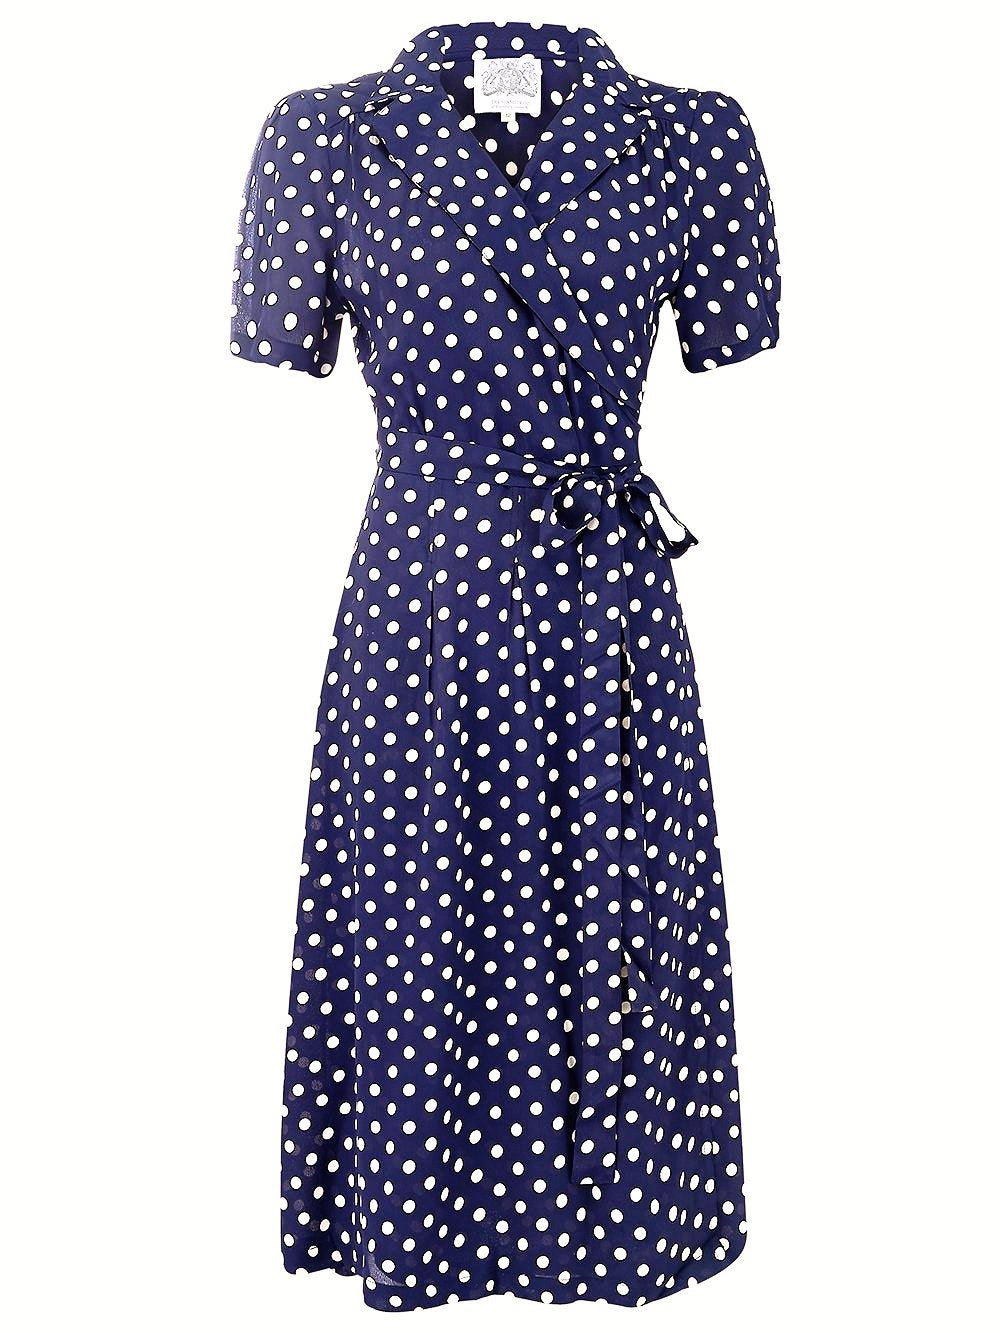 "The Seamstress of Bloomsbury ""Peggy"" Wrap Dress in Navy with Polka Dot Spot, Classic The 1940s Vintage Inspired Style - RocknRomance Clothing"